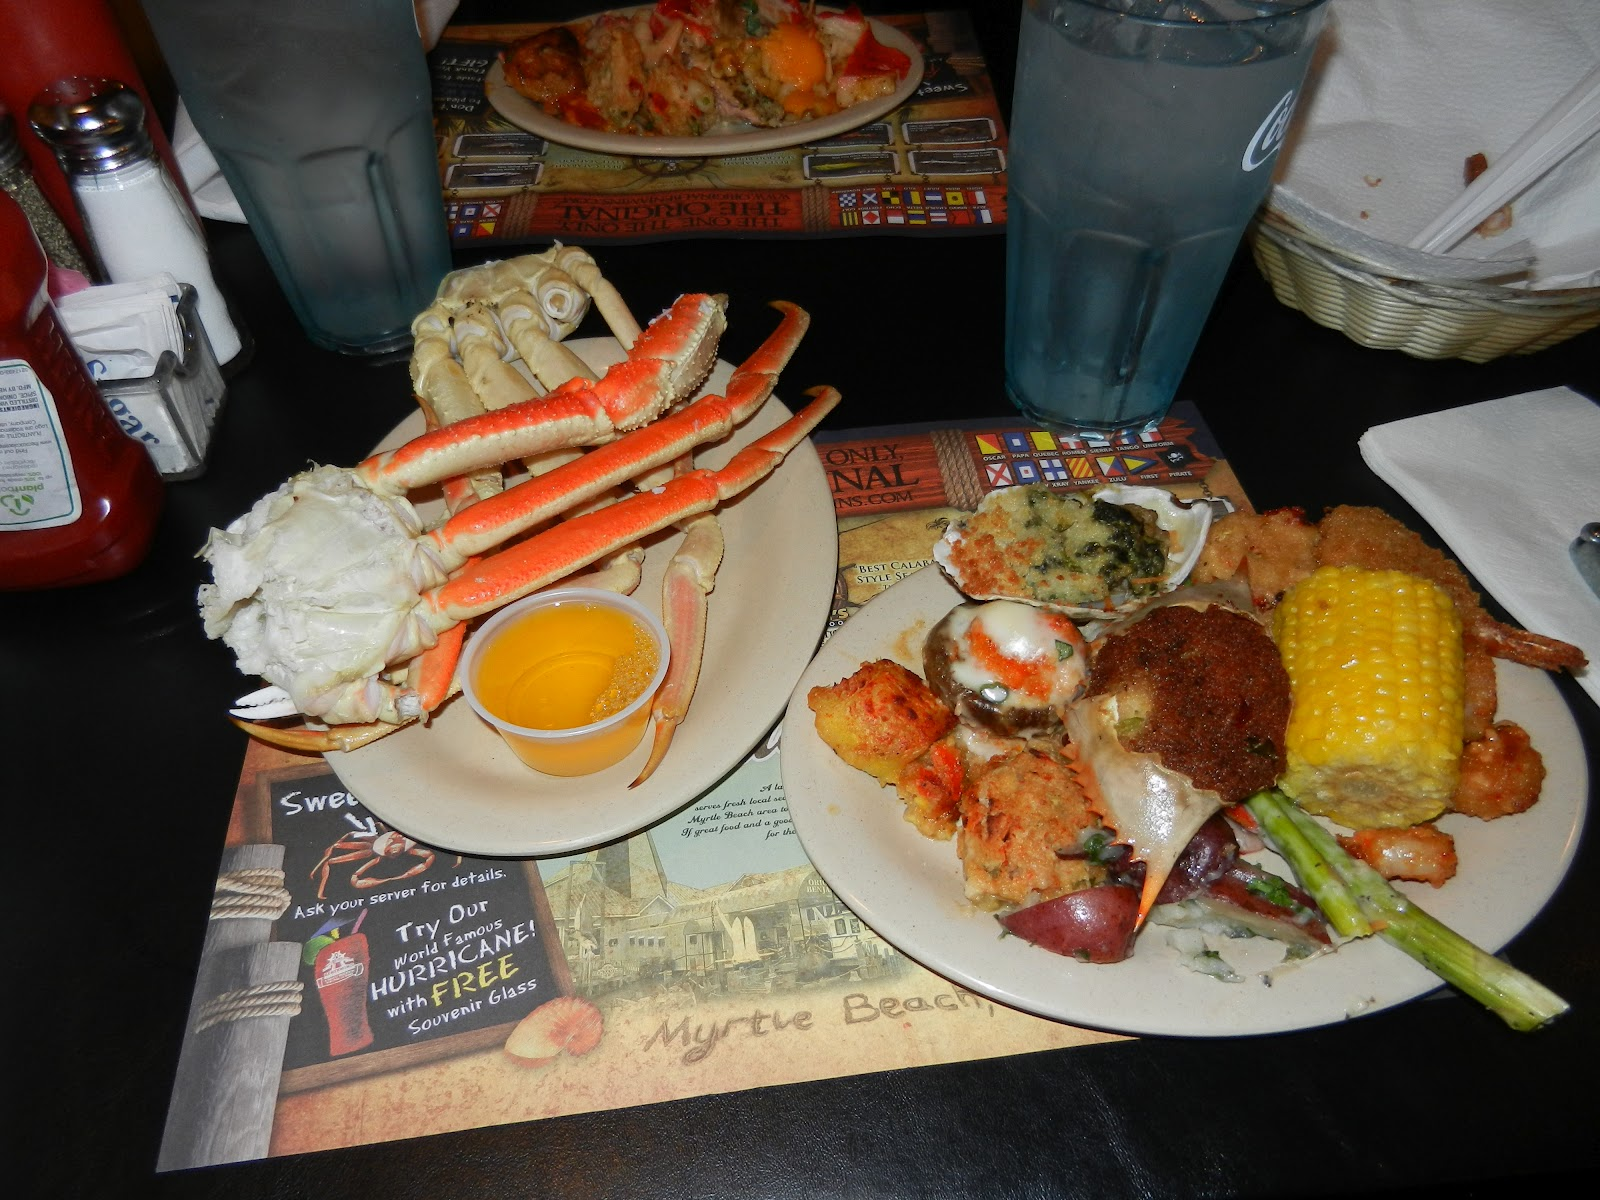 Crab Legs And A Delicious Plate Of Seafood